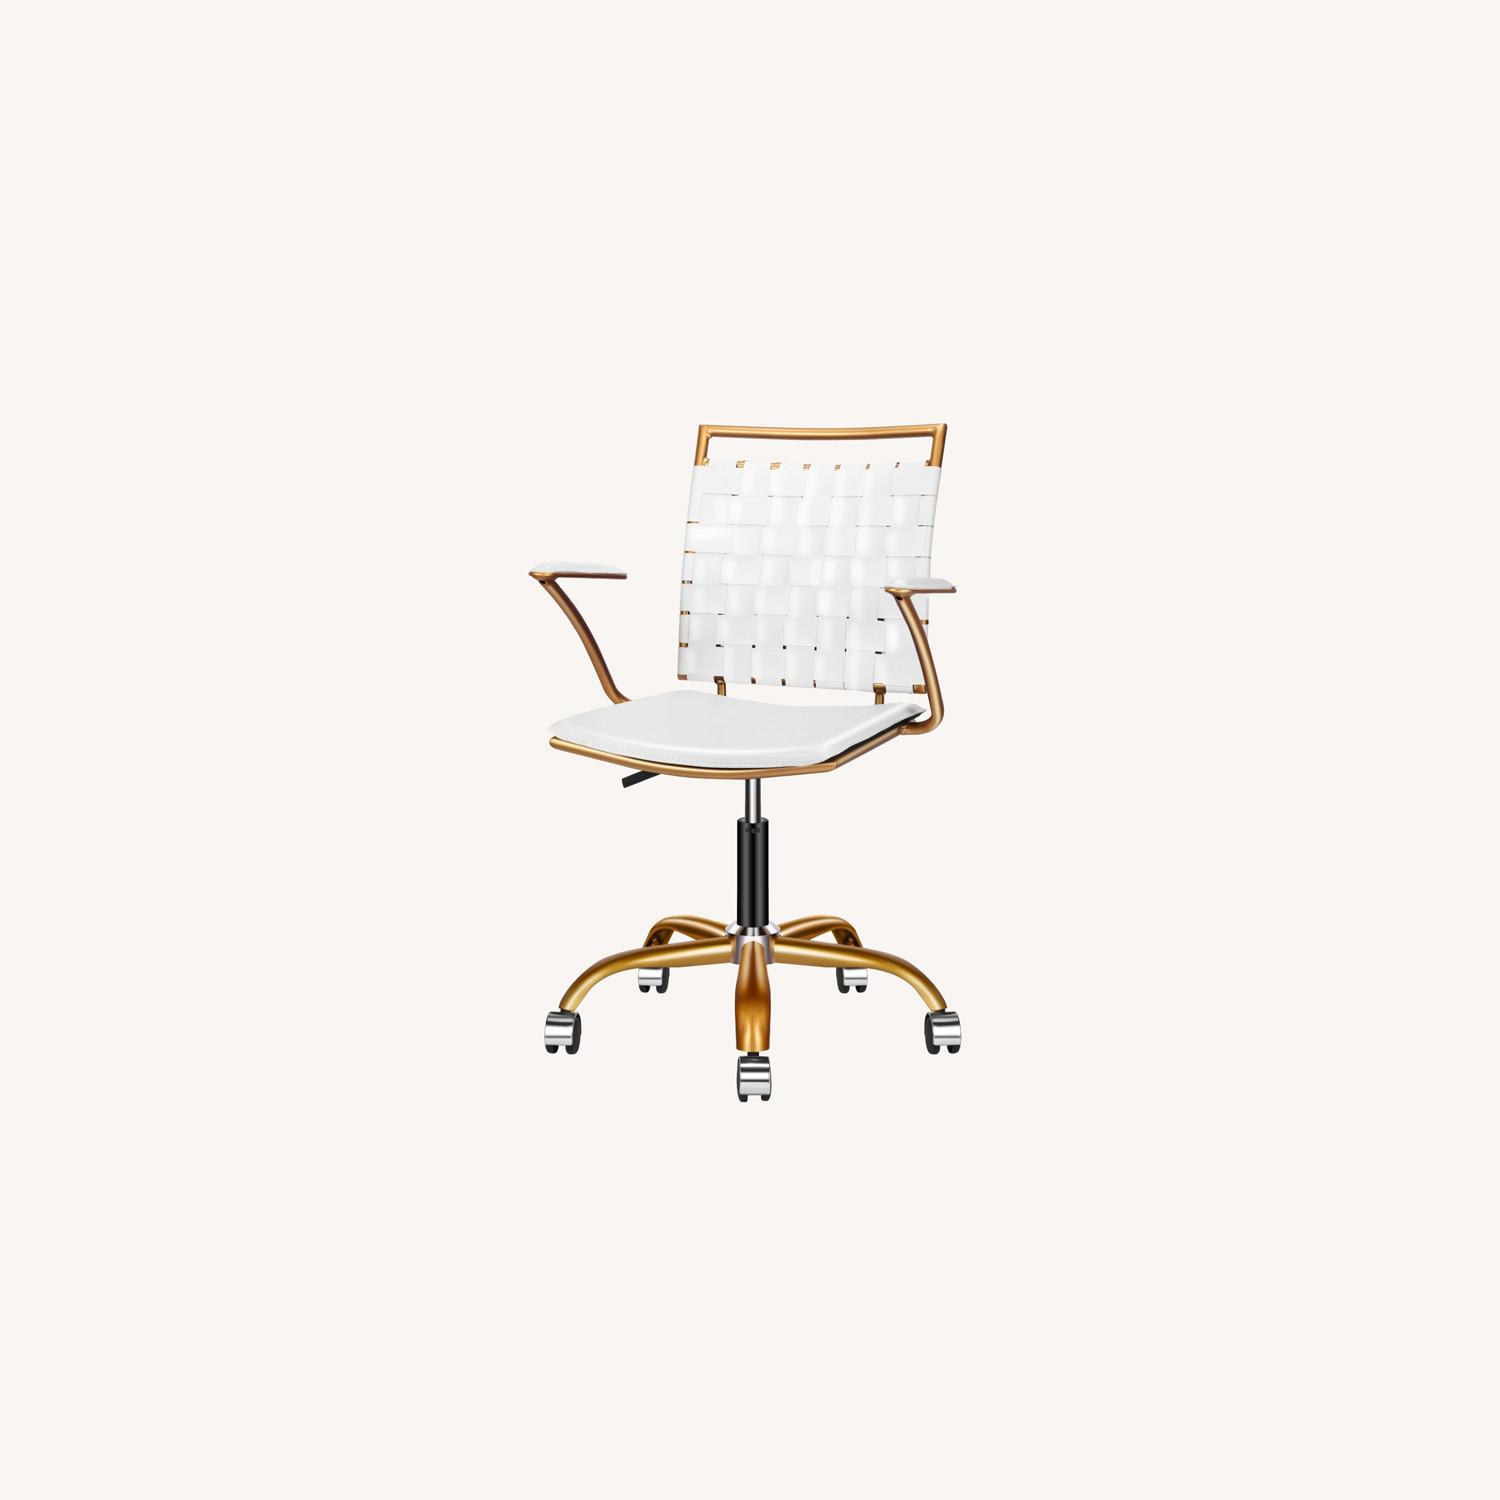 Wayfair Woven White and Gold Desk Chair - image-0